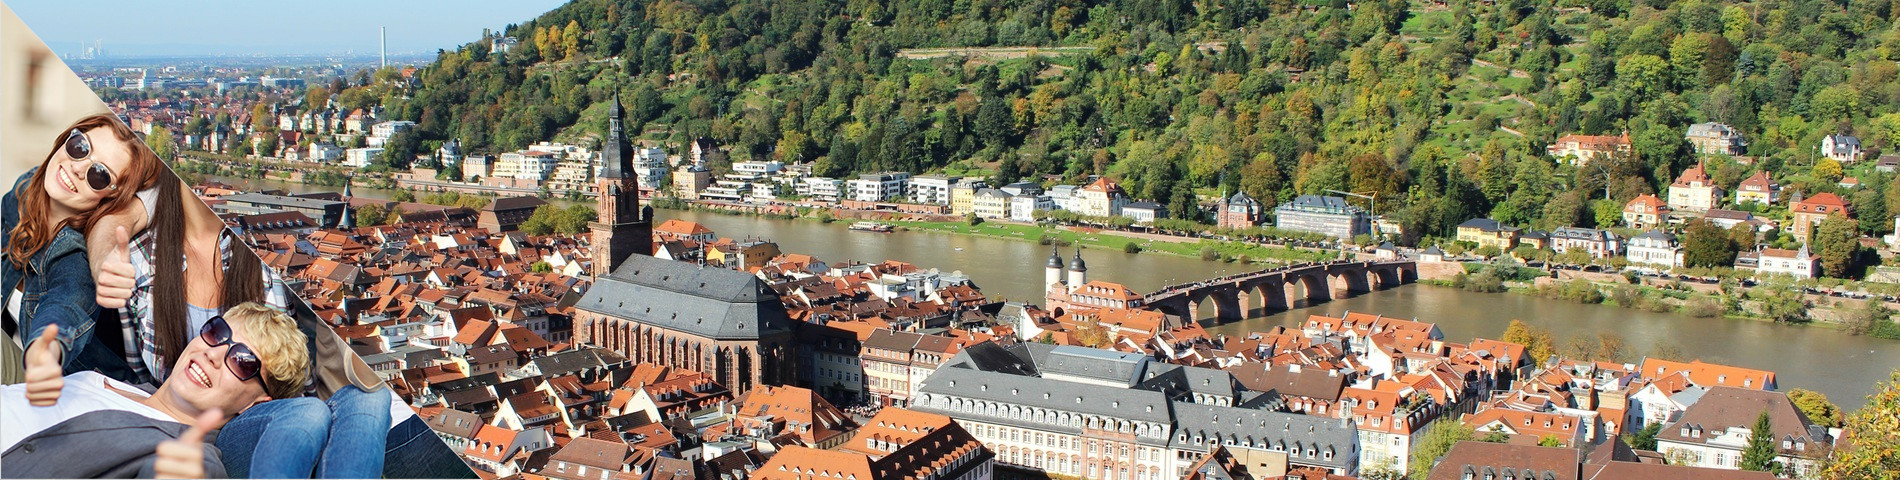 Heidelberg - Voyages scolaires / Groupes